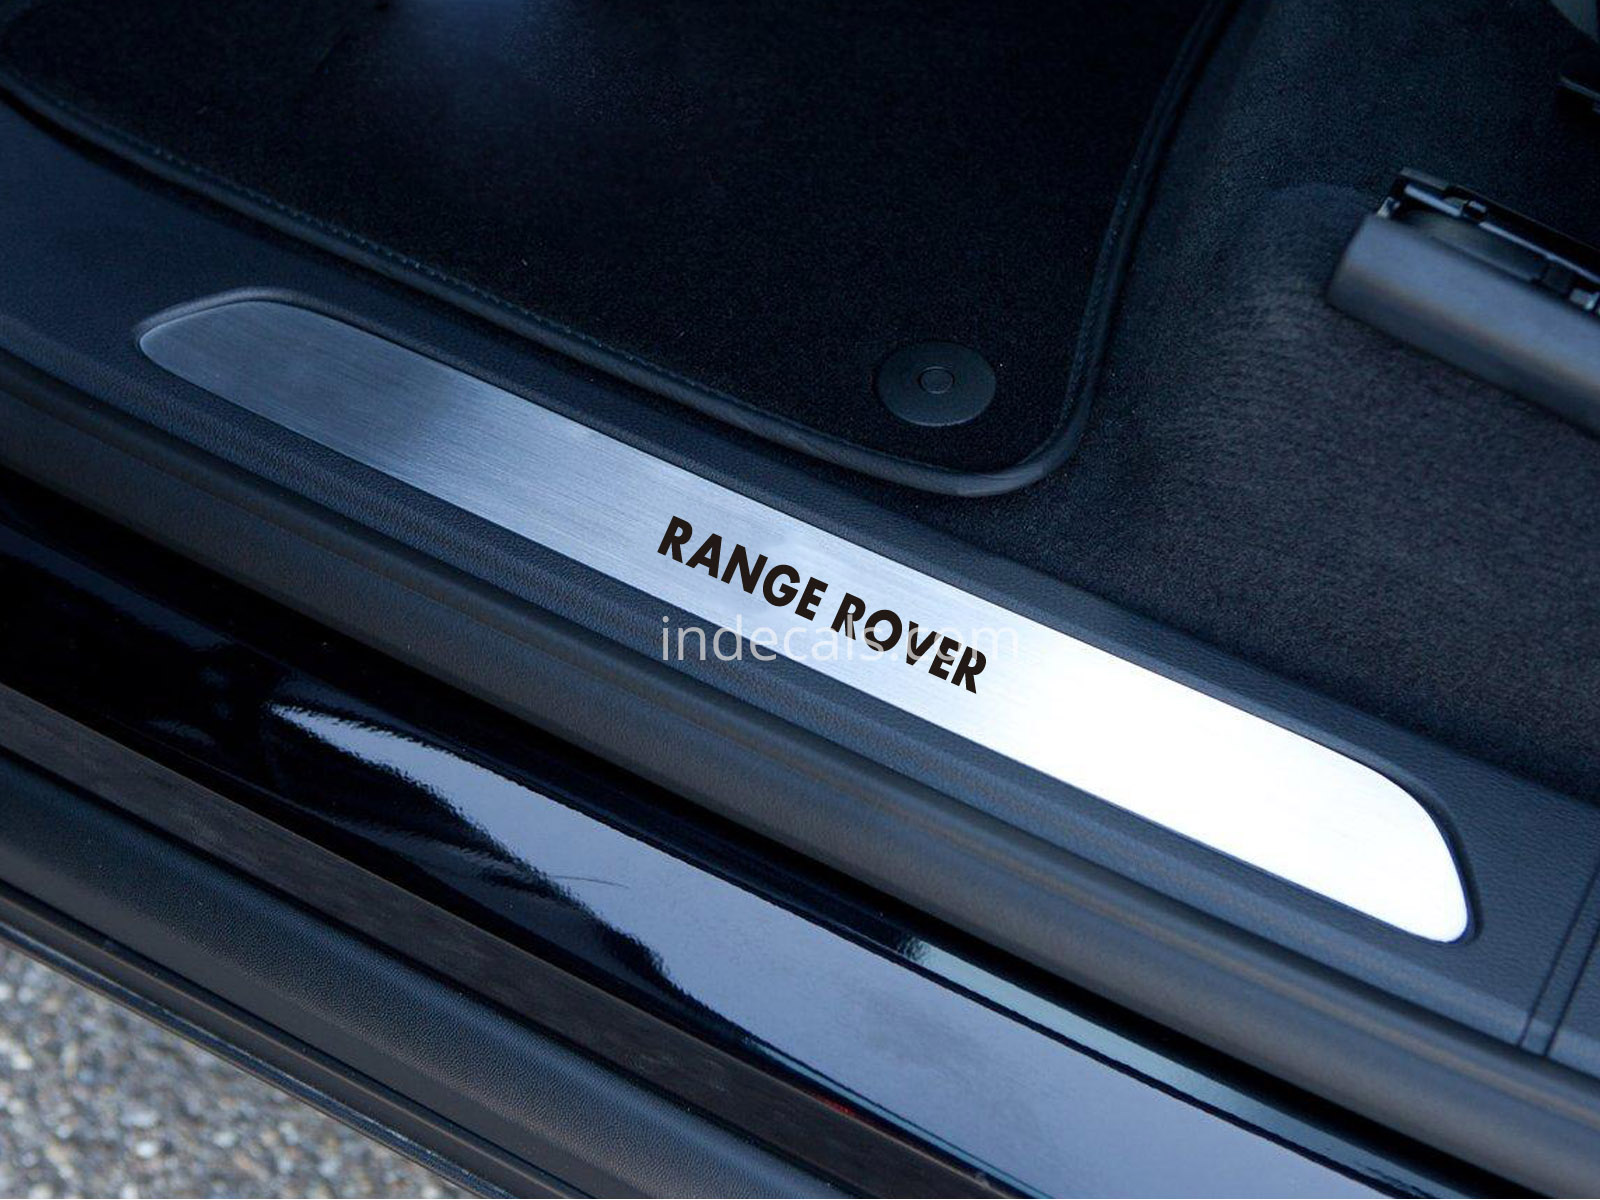 6 x Range Rover Stickers for Door Sills - Black